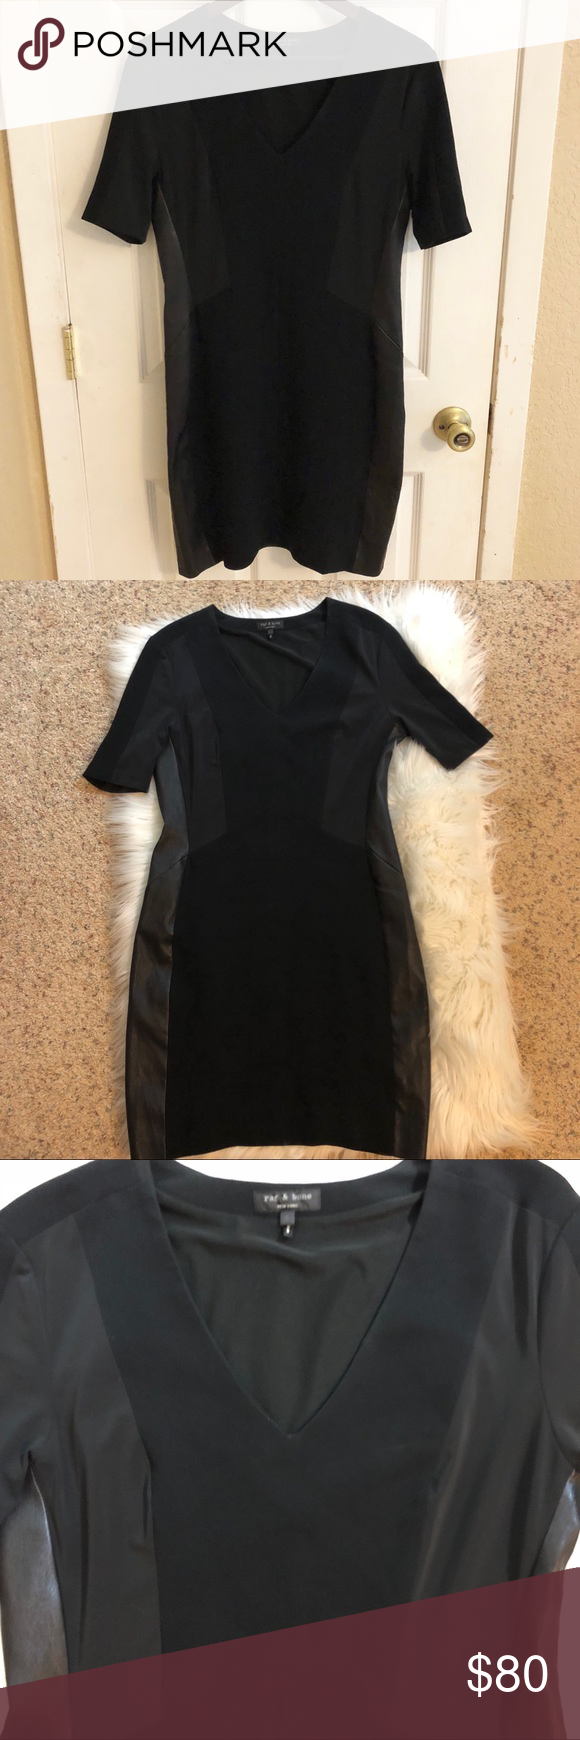 Rag bone sheath dress with lambskin sides short sleeve with side